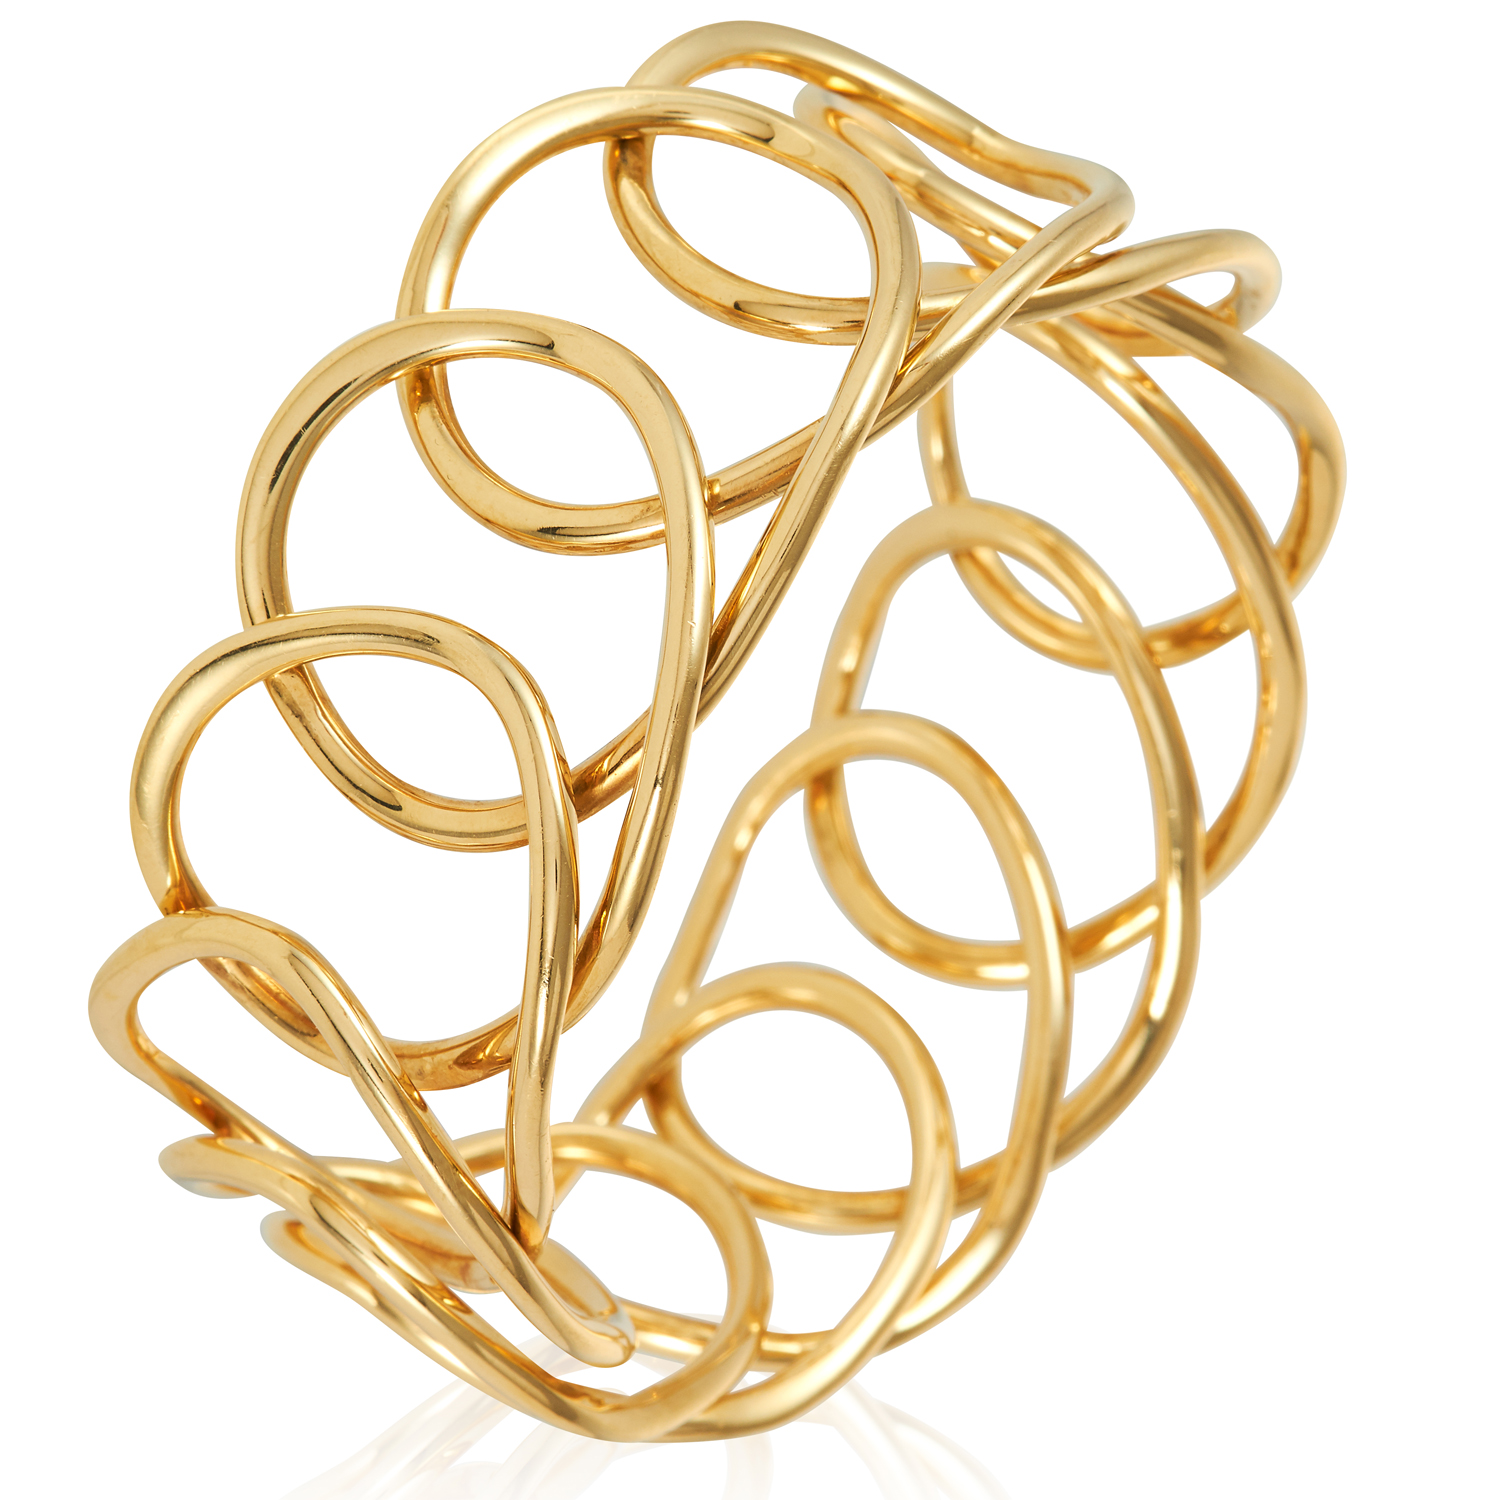 A FANCY LINK GOLD BANGLE in 18ct yellow gold, designed as a woven loop overlapping itself, British